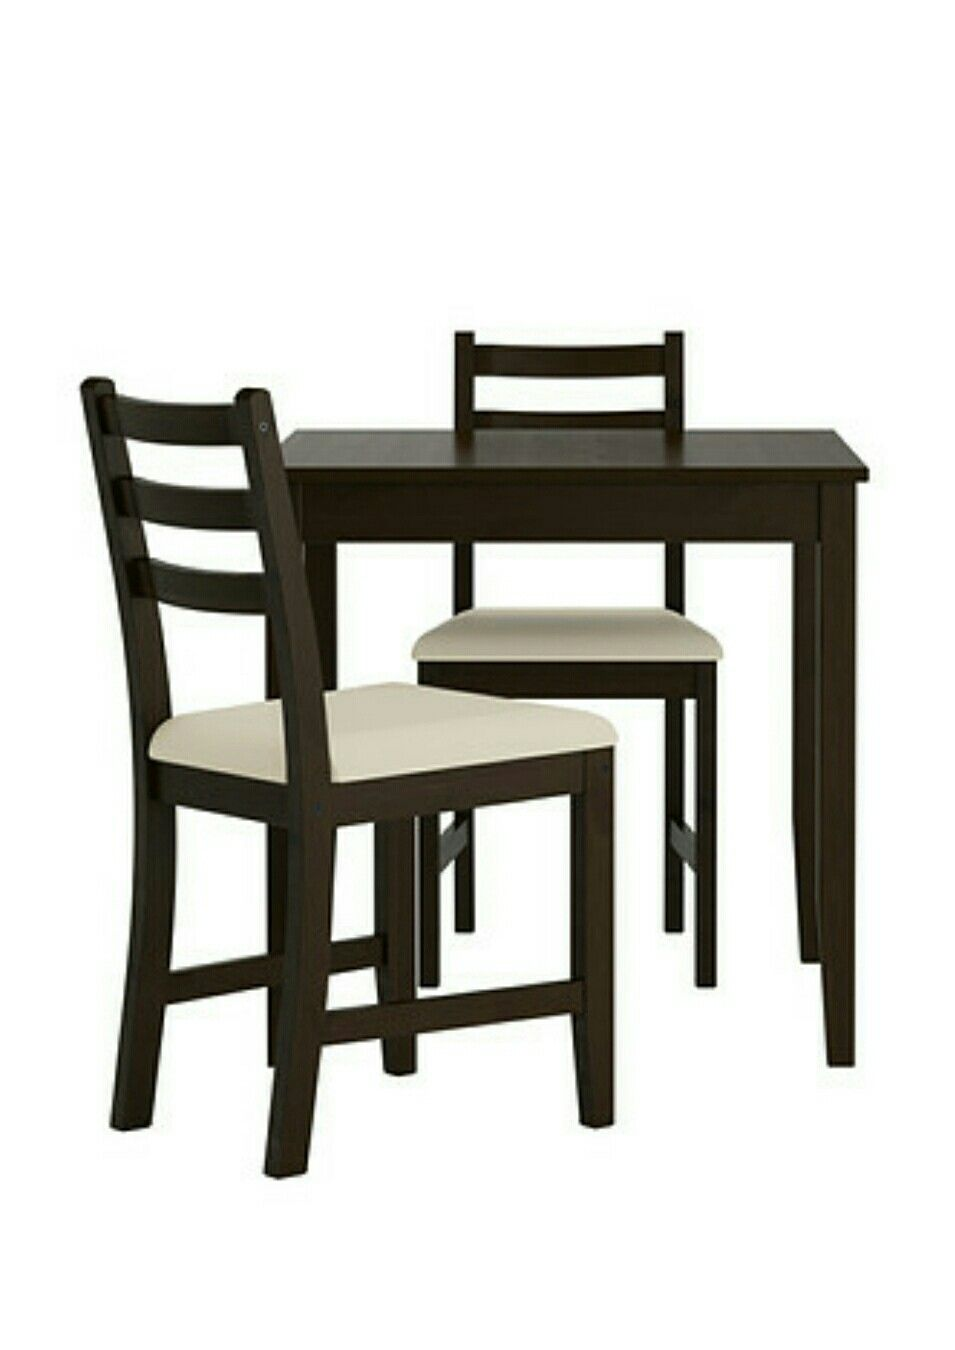 Ikea Lerhamn Table And Chairs Ikea Dining Sets Dining Room Table Chairs Ikea Dining